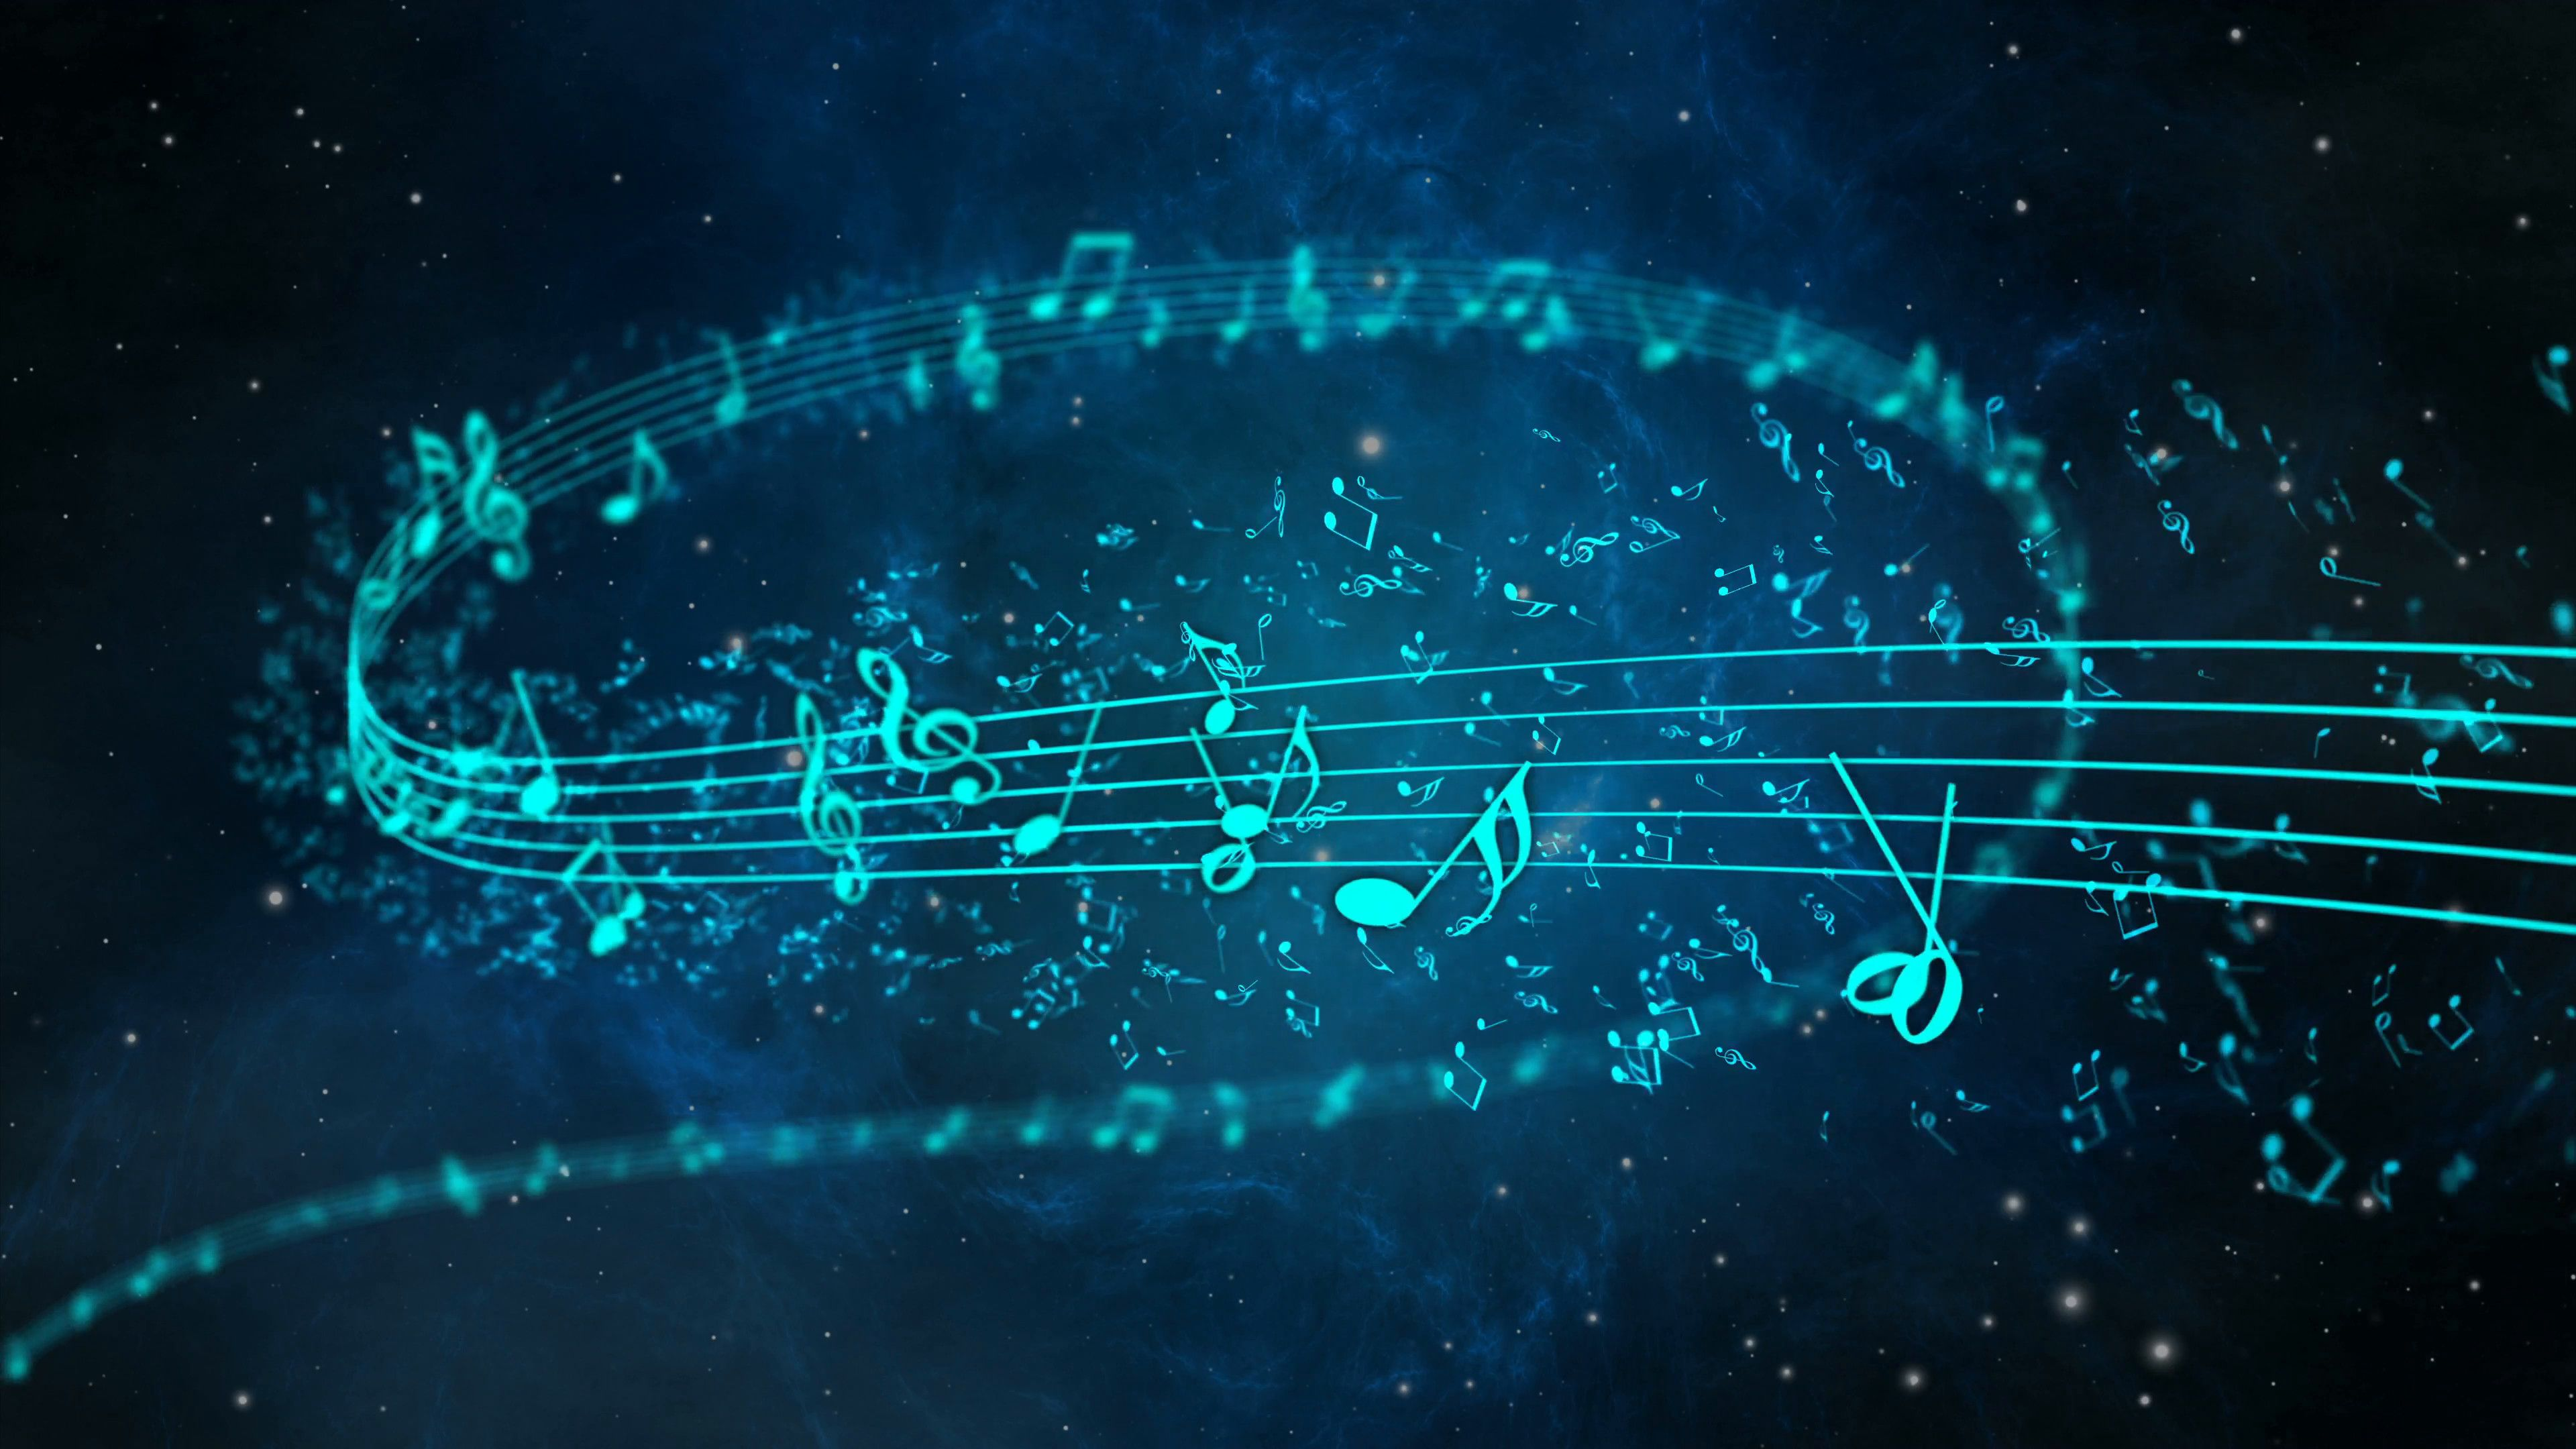 Music Background Image ·① Music backgrounds, Music notes